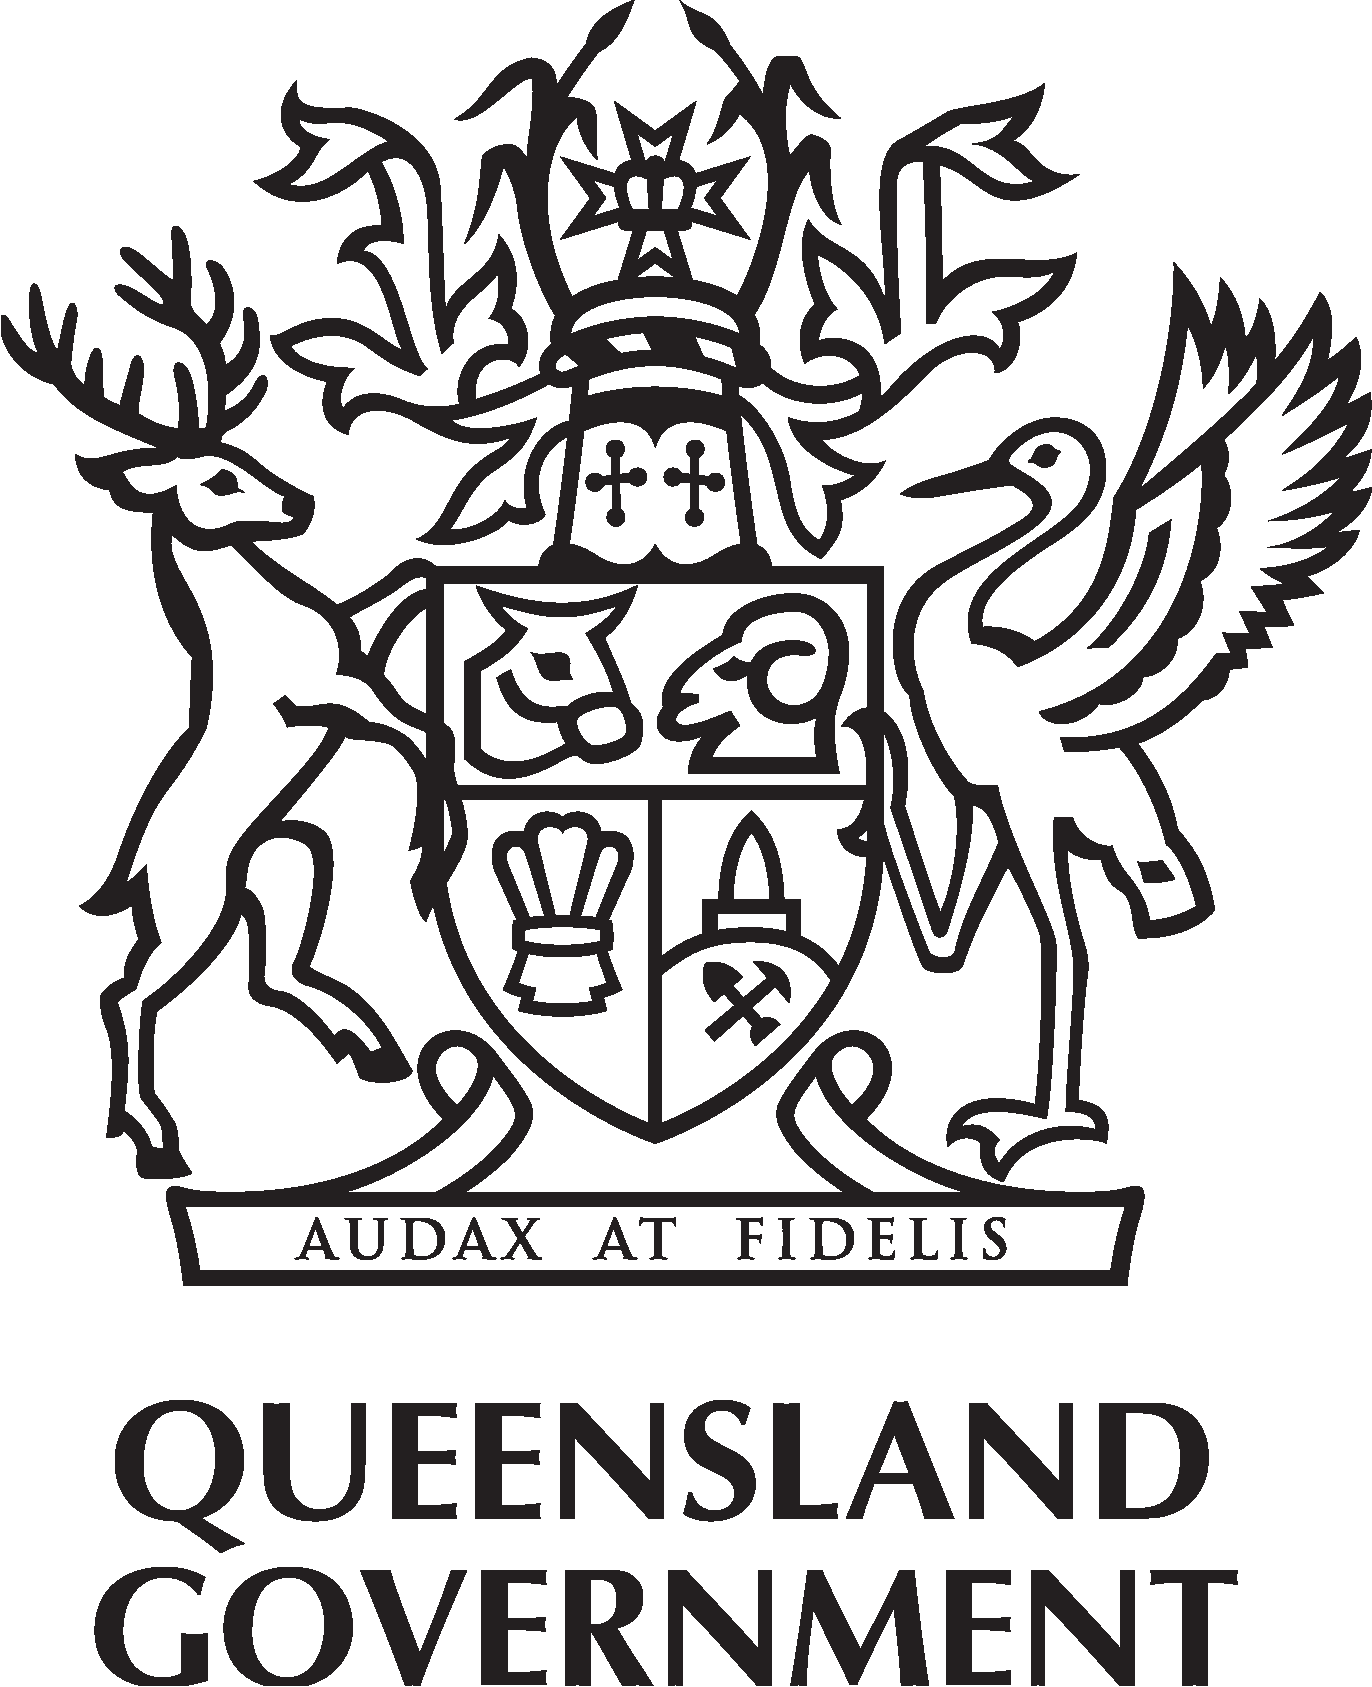 queensland-government-logo_355895.png